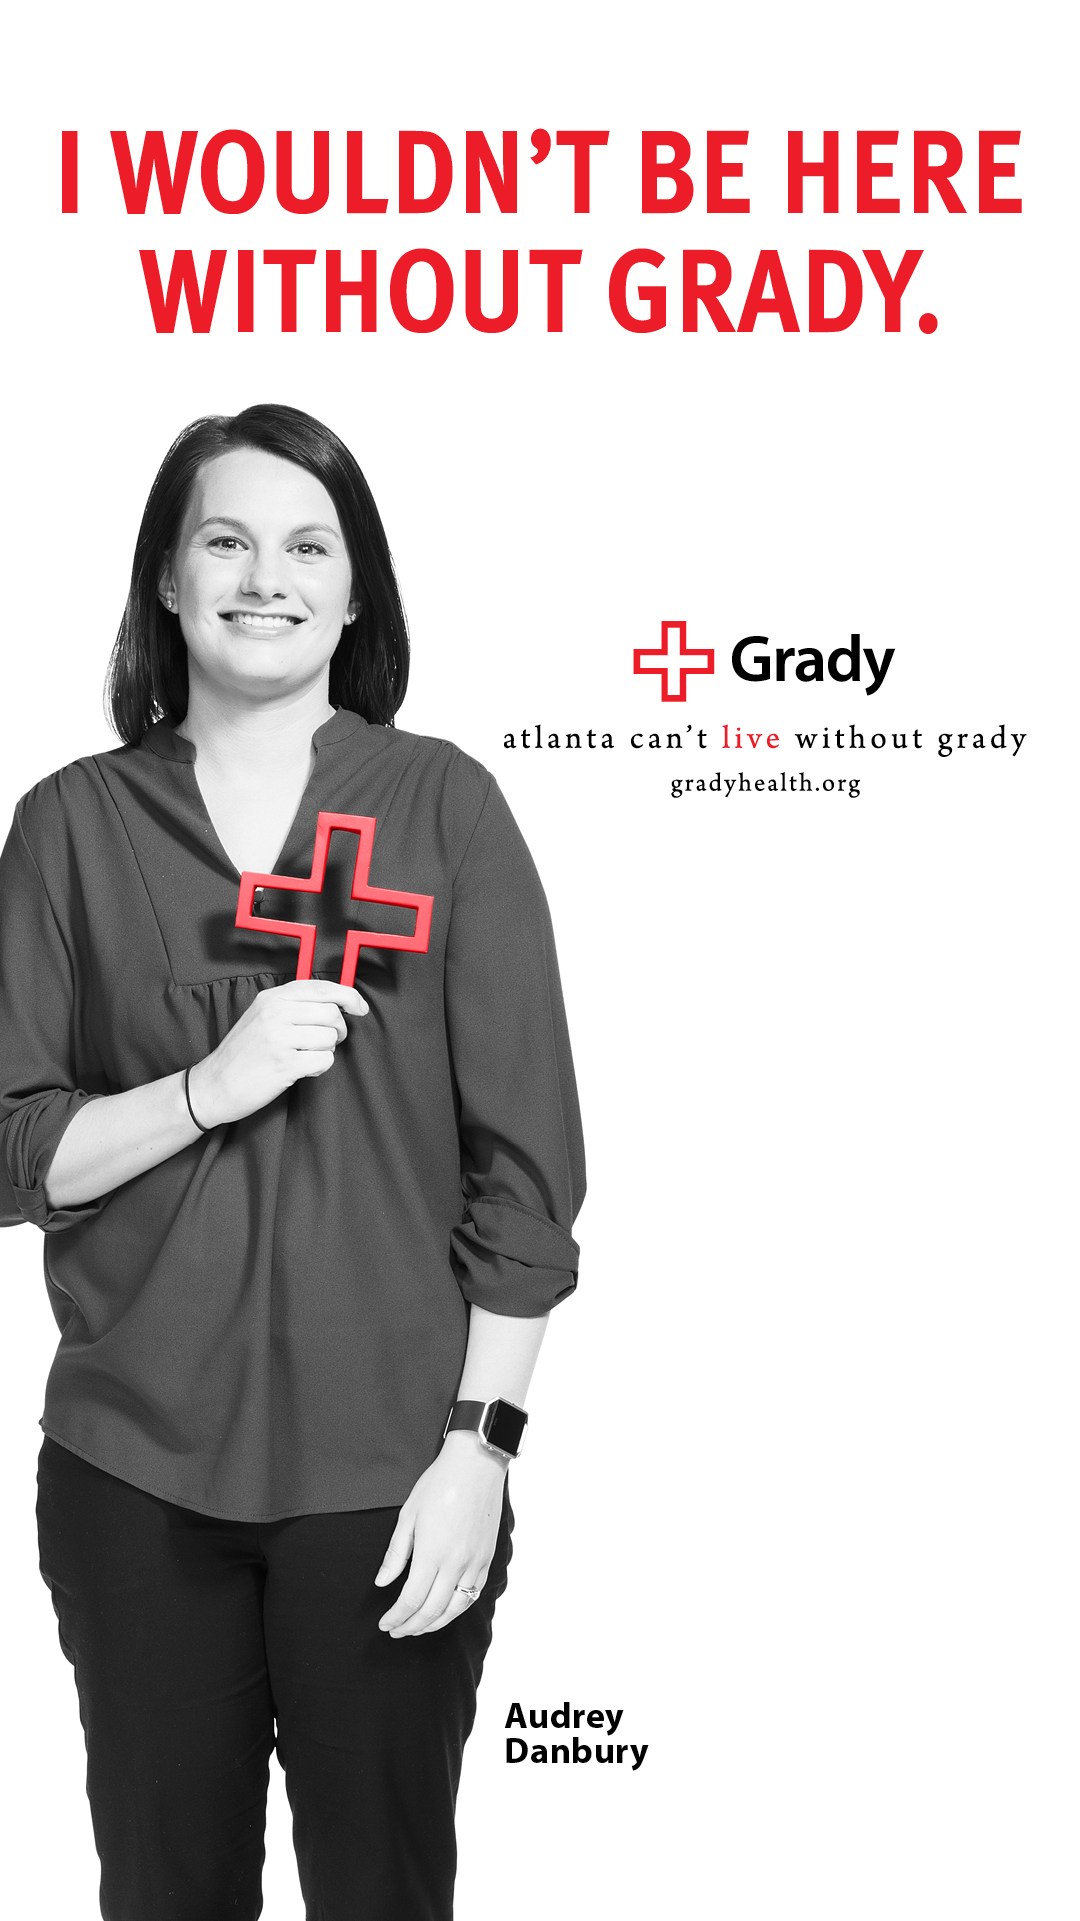 Grady2017_Digital_Bus_ShelterAudreyRGB